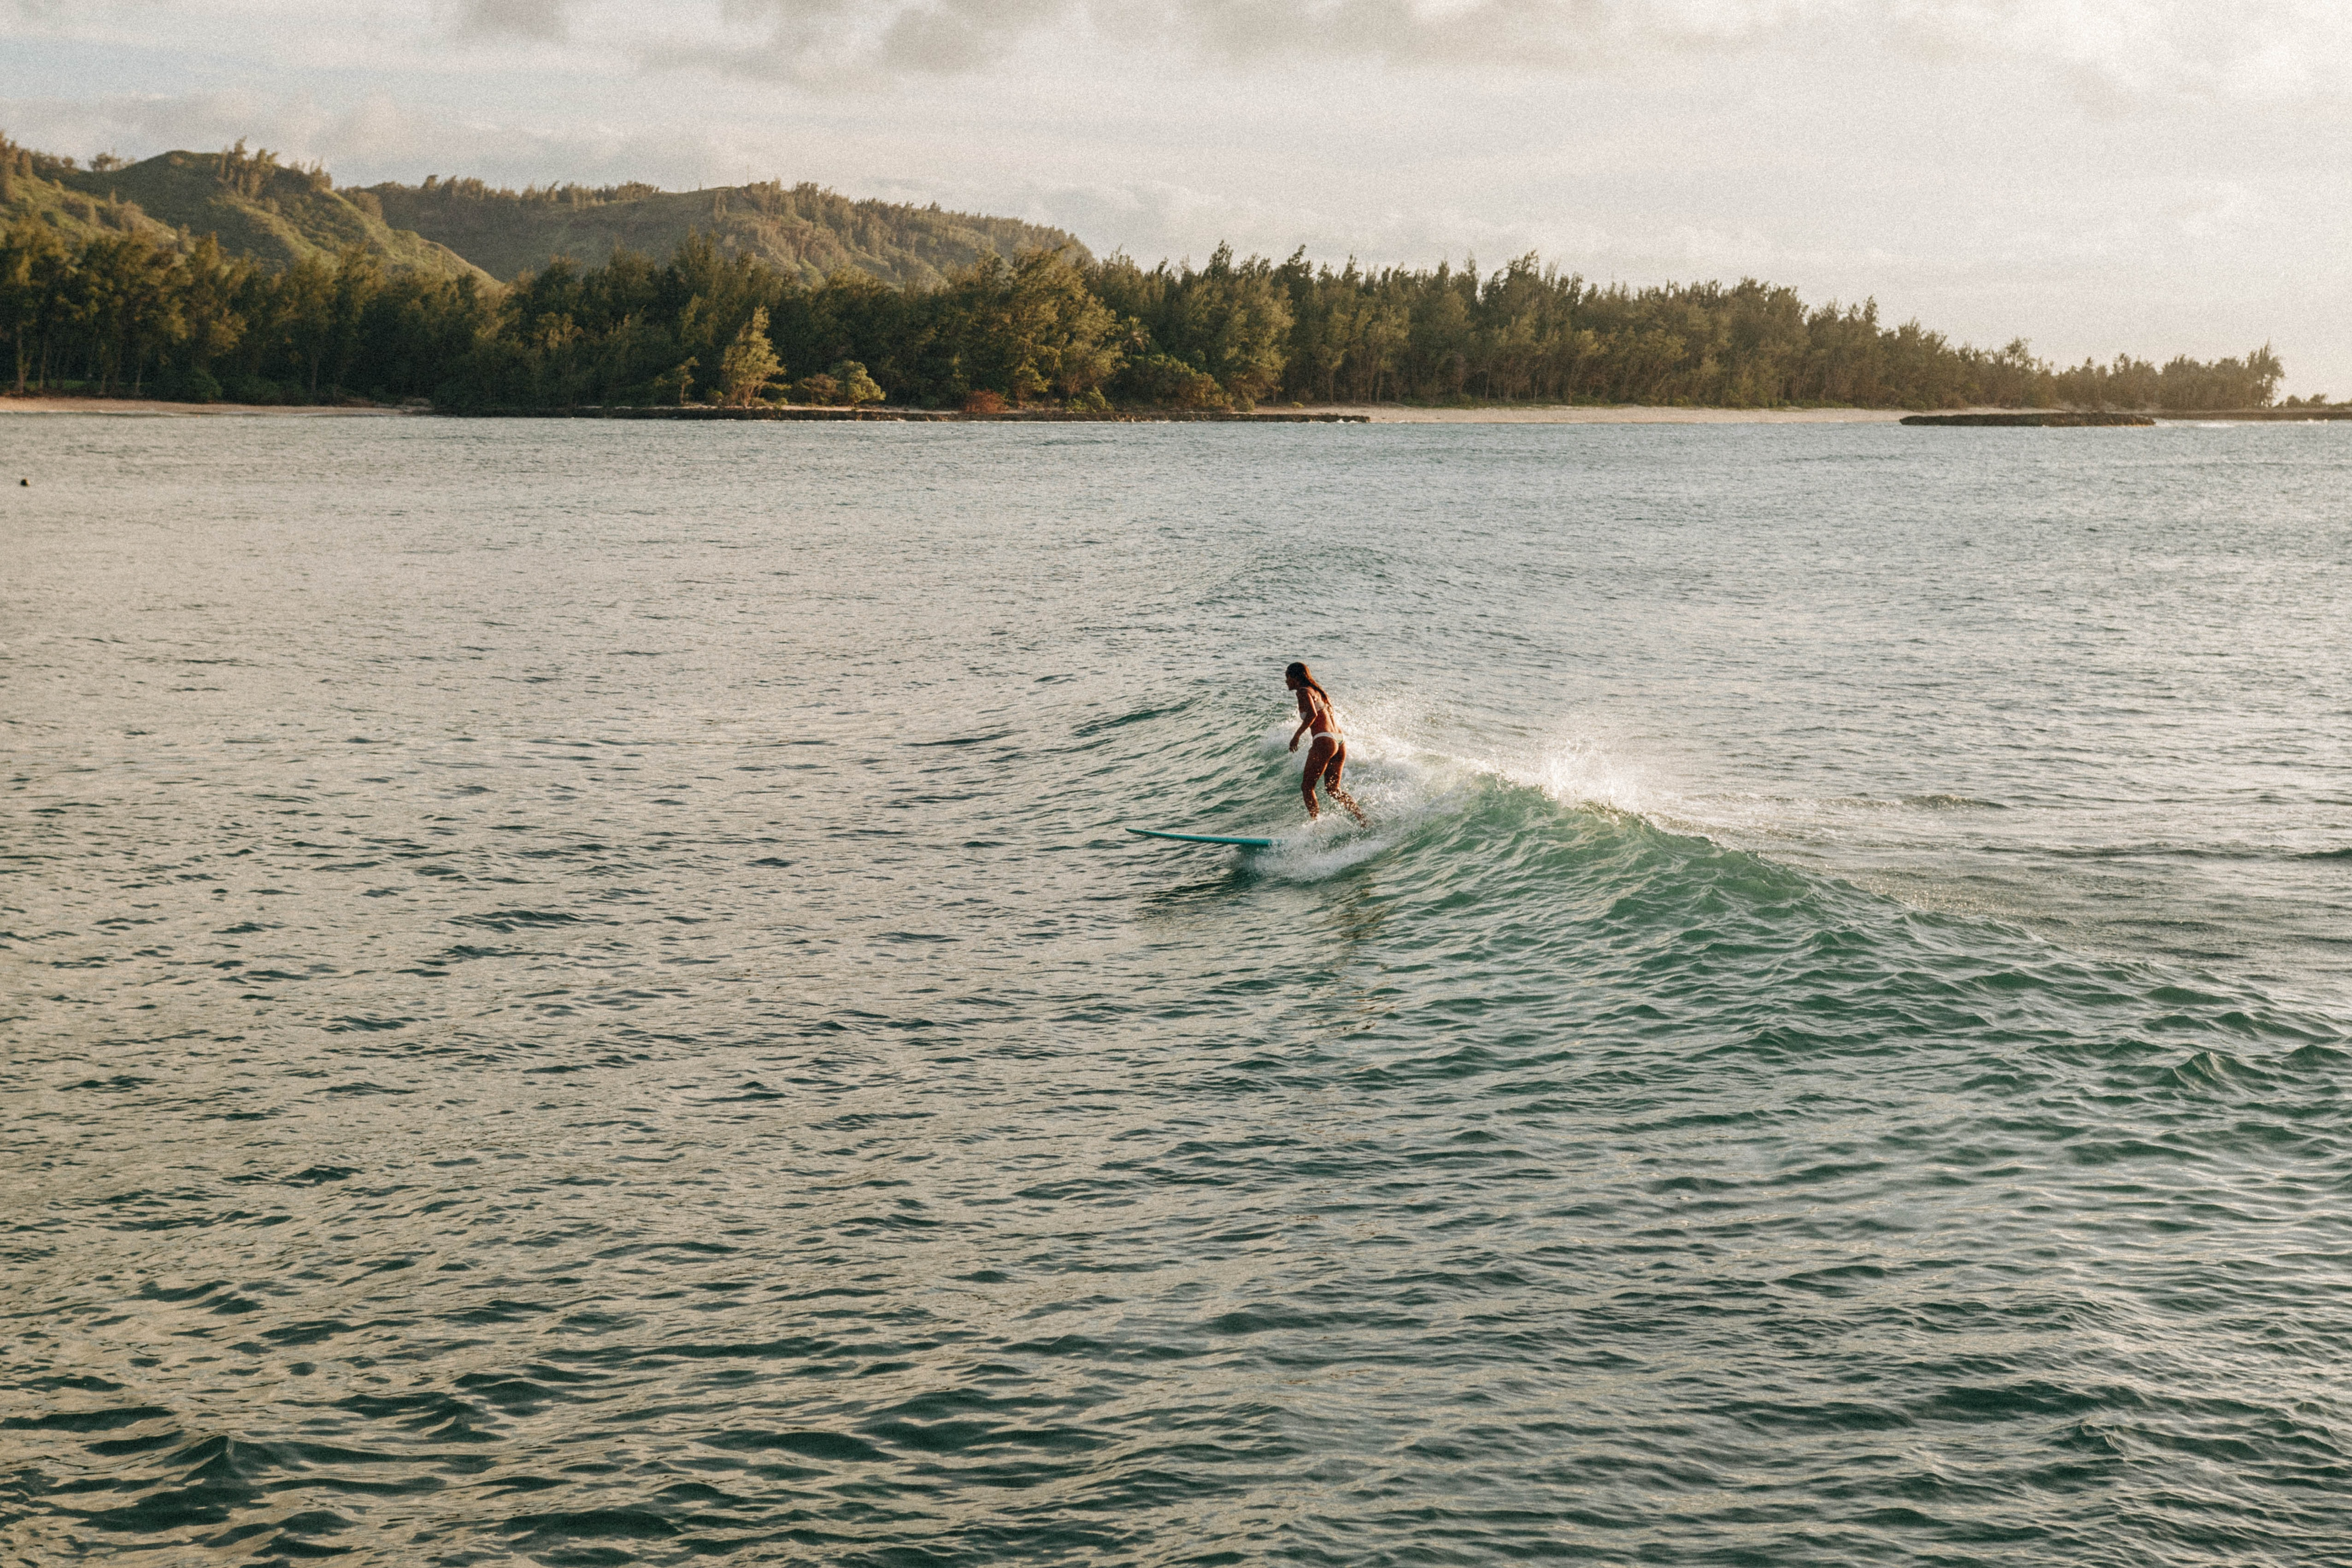 A lone surfer riding a small wave in a green ocean in Turtle Bay Resort